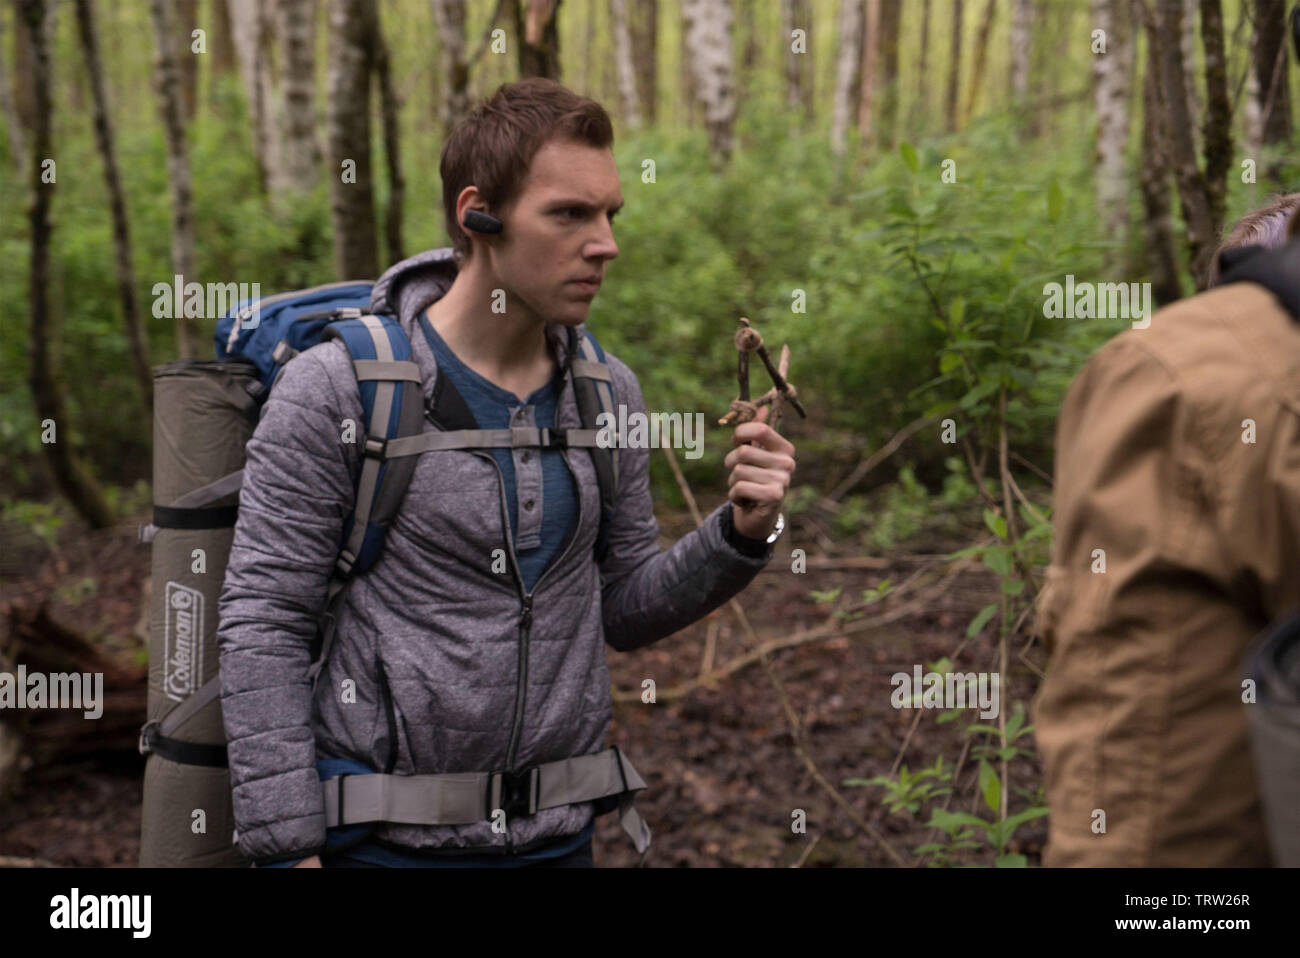 JAMES ALLEN MCCUNE in BLAIR WITCH (2016). Copyright: Editorial use only. No merchandising or book covers. This is a publicly distributed handout. Access rights only, no license of copyright provided. Only to be reproduced in conjunction with promotion of this film. Credit: LIONSGATE/ROOM 101/SNOOT ENT/VERTIGO ENT. / HELCERMANAS-BENGE, CHRIS / Album - Stock Image